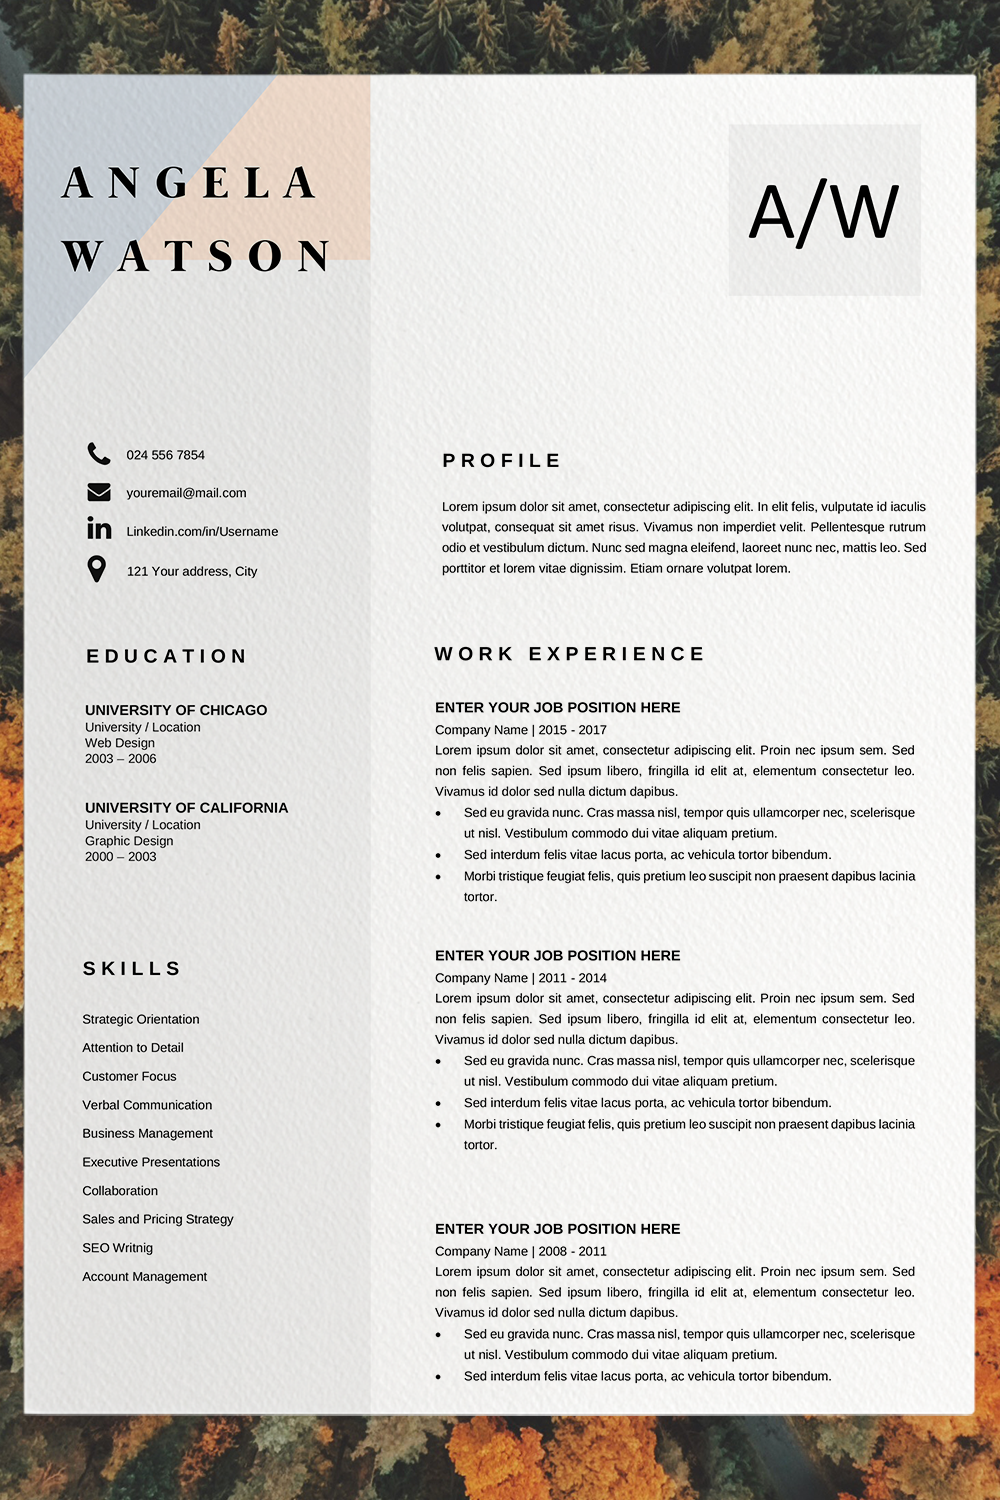 Professional Cv Template Word Resume Template Instant Download In Pages Resume Template Microsoft Word Professional Cv Design In 2021 Cv Template Word Resume Template Word Resume Template